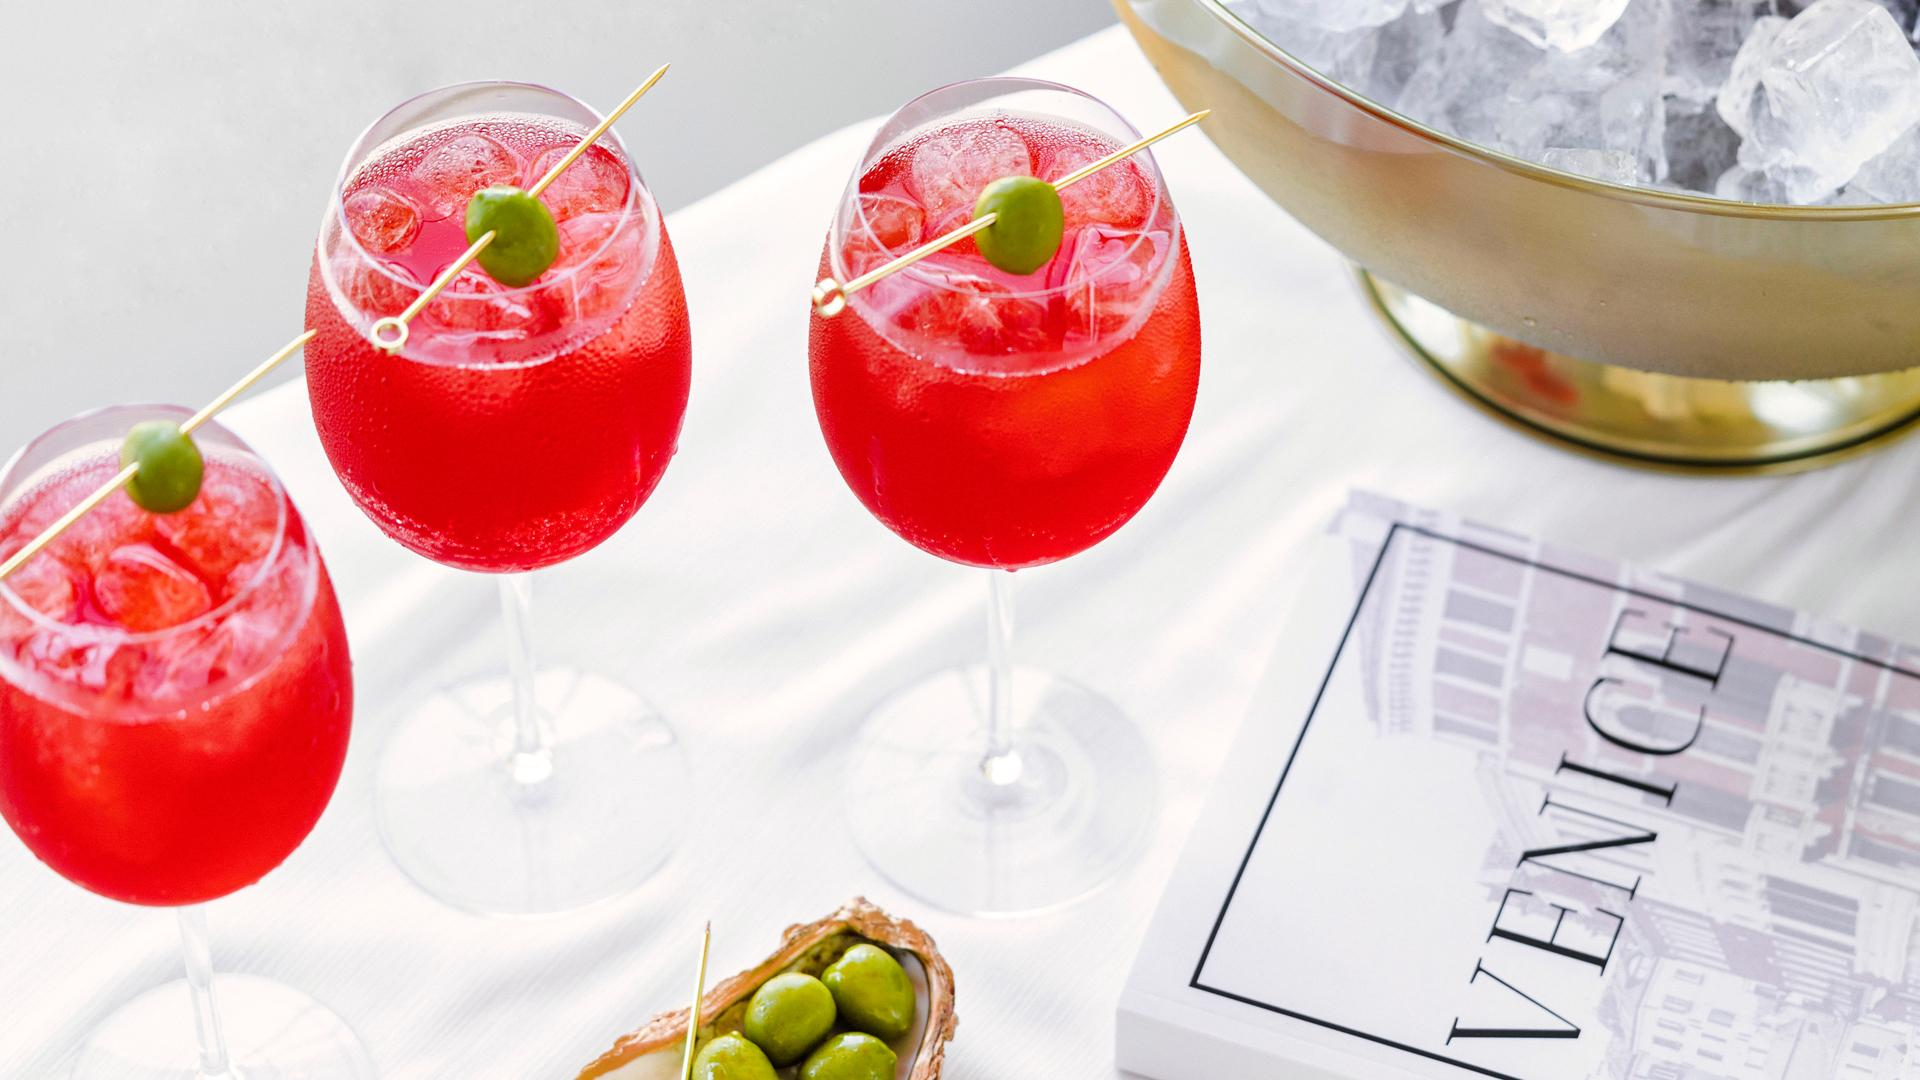 Picnic recipes   Select spritzes are garnished with olives